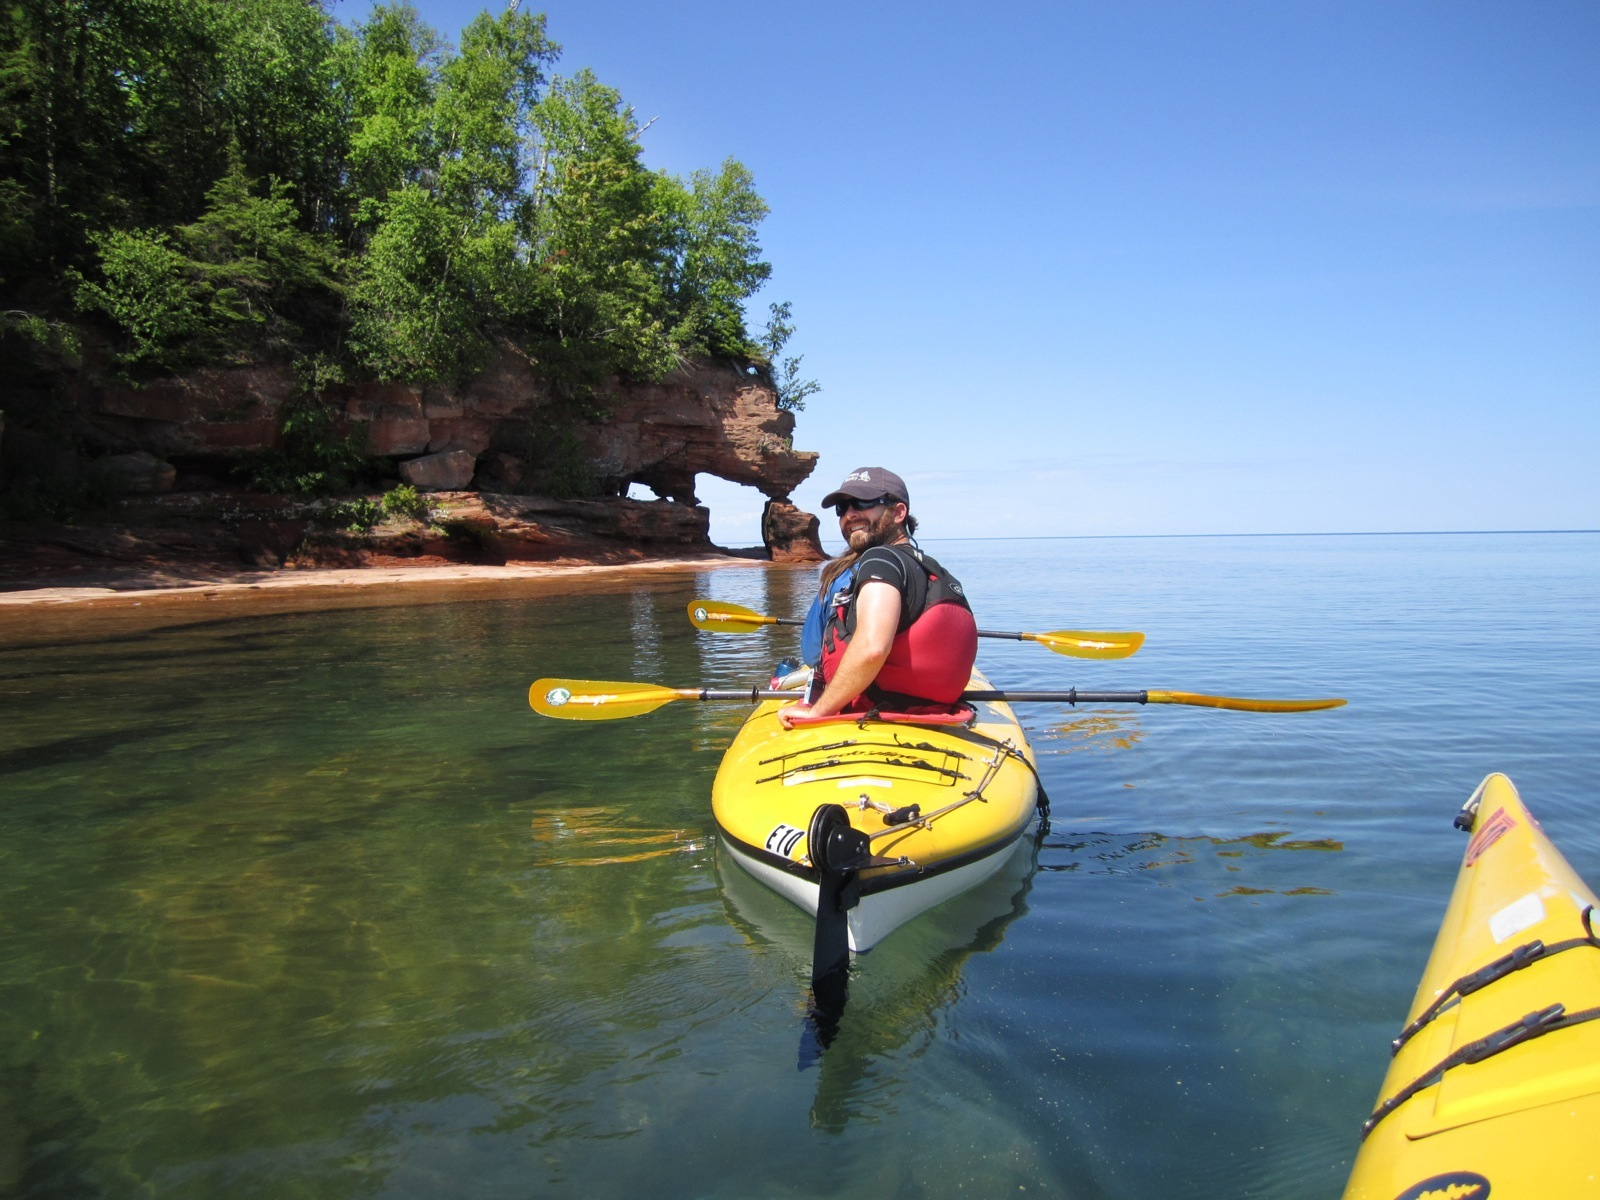 Kayakers stop to examine part of the Apostle Islands shoreline, which forms a hole-in-the-wall rock